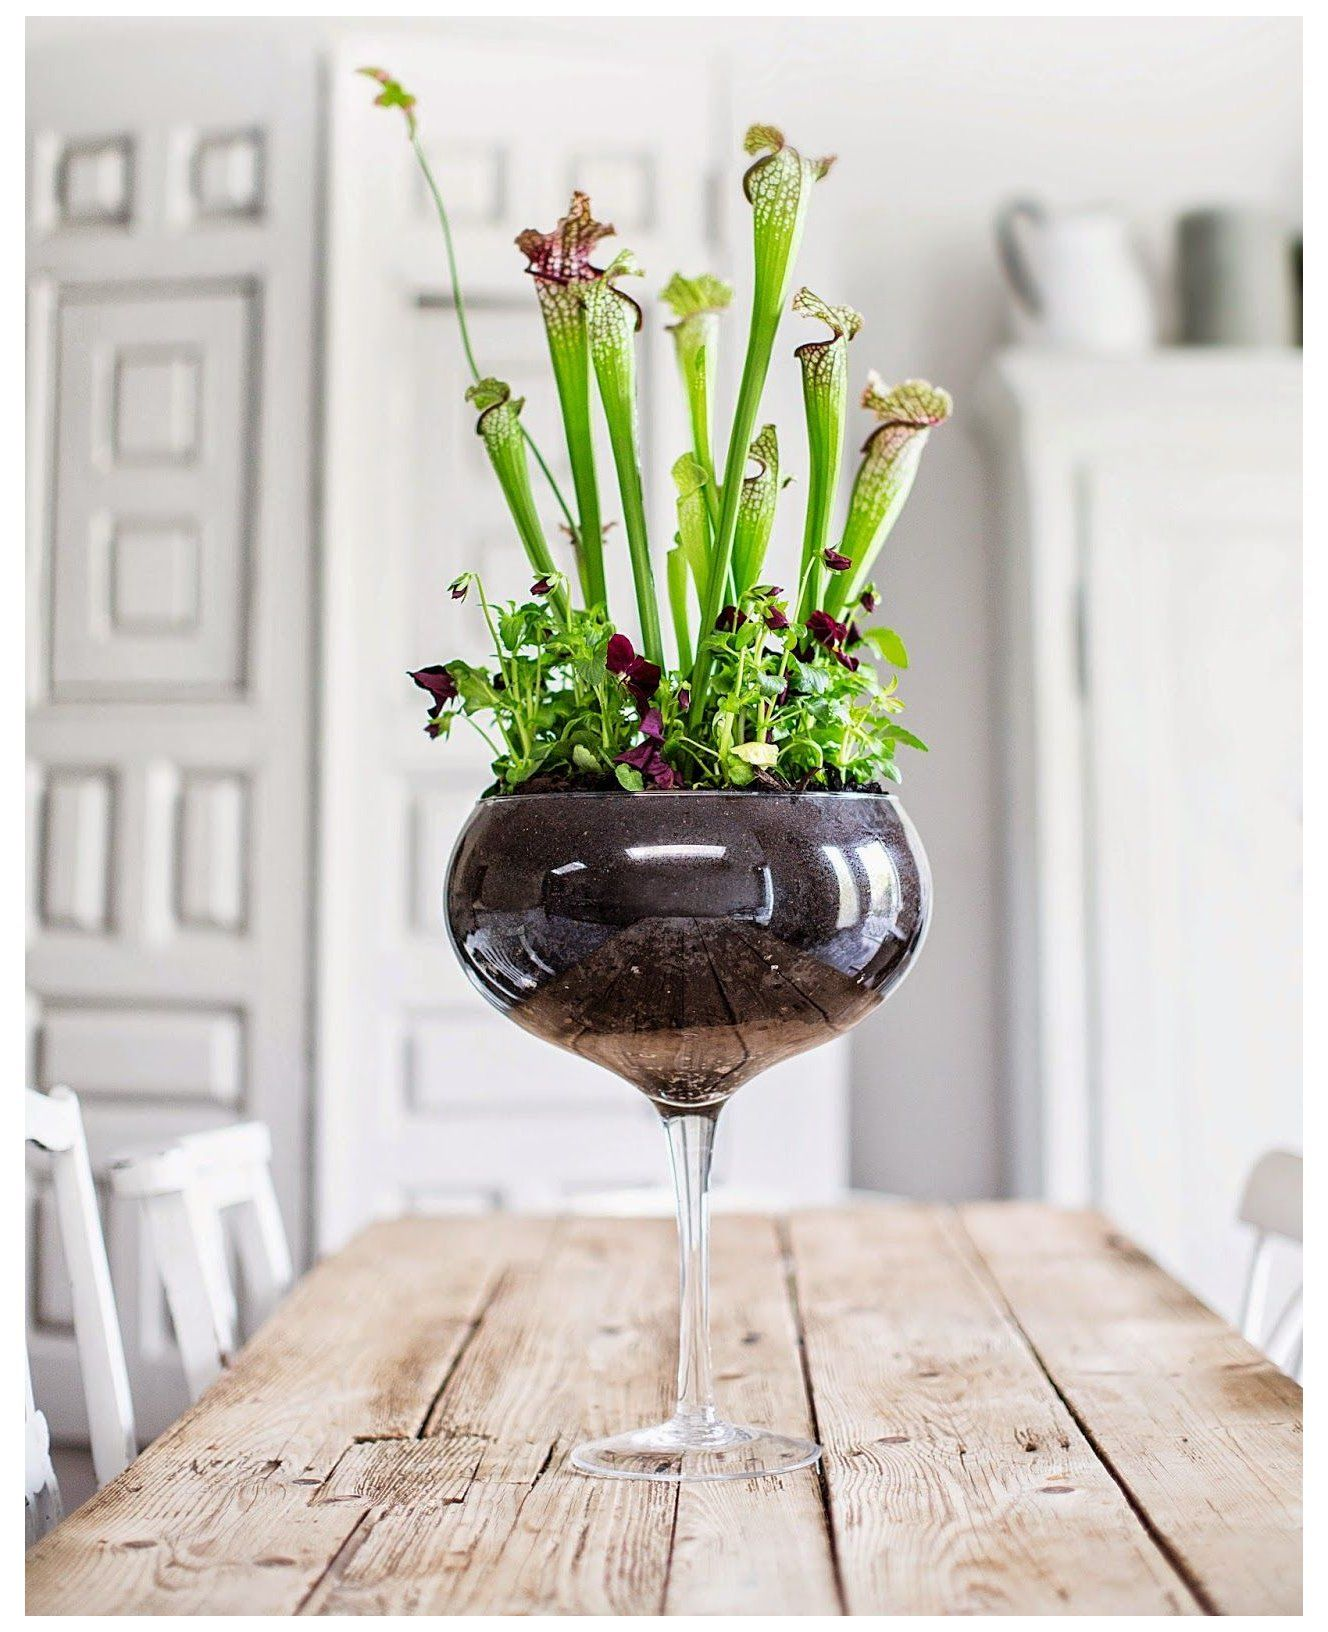 The house gardener pitcher plant potting soil This is